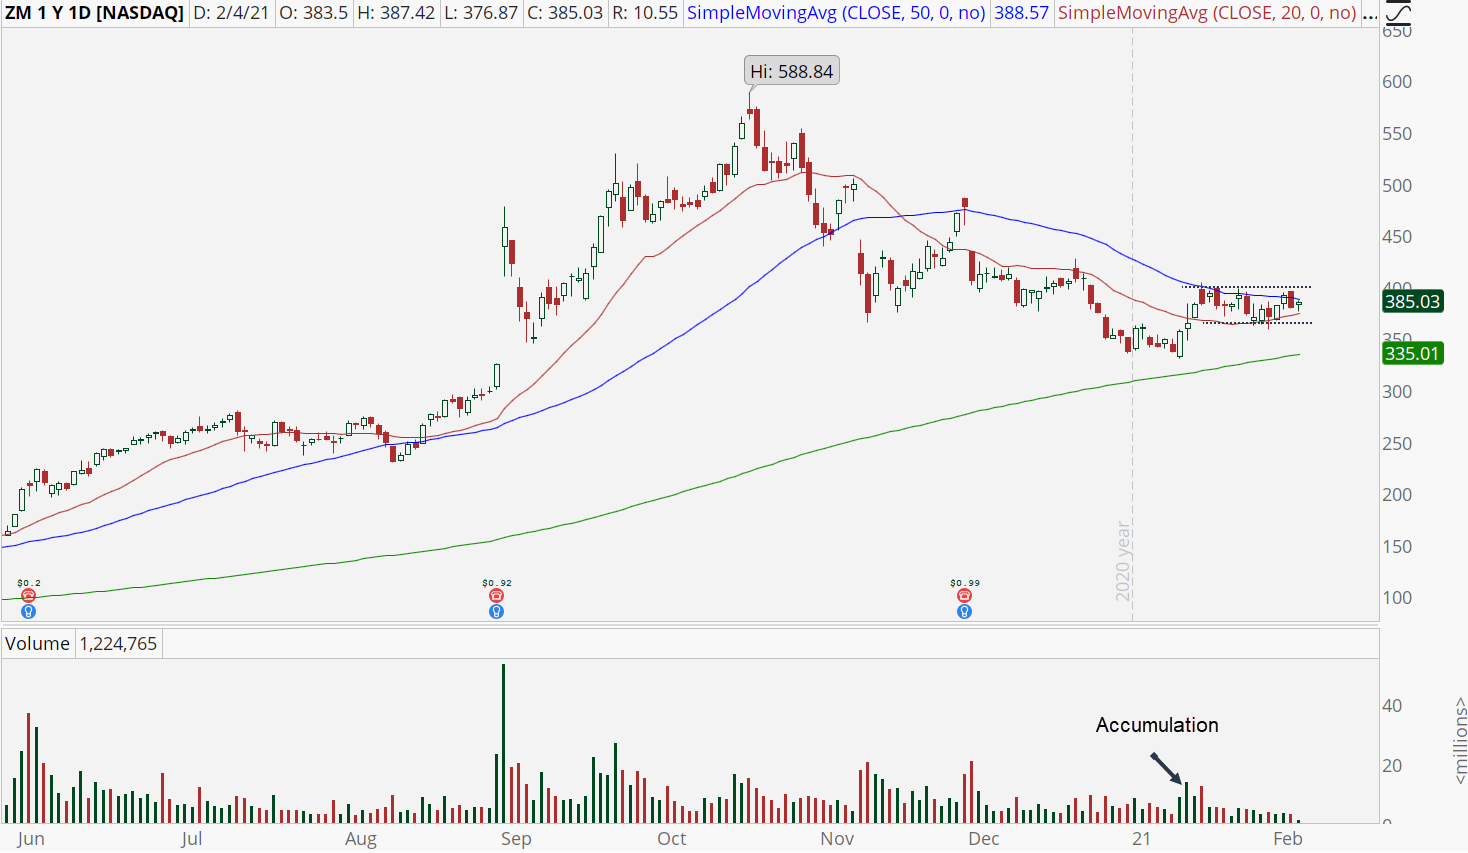 Zoom (ZM) daily stock chart with bottoming pattern